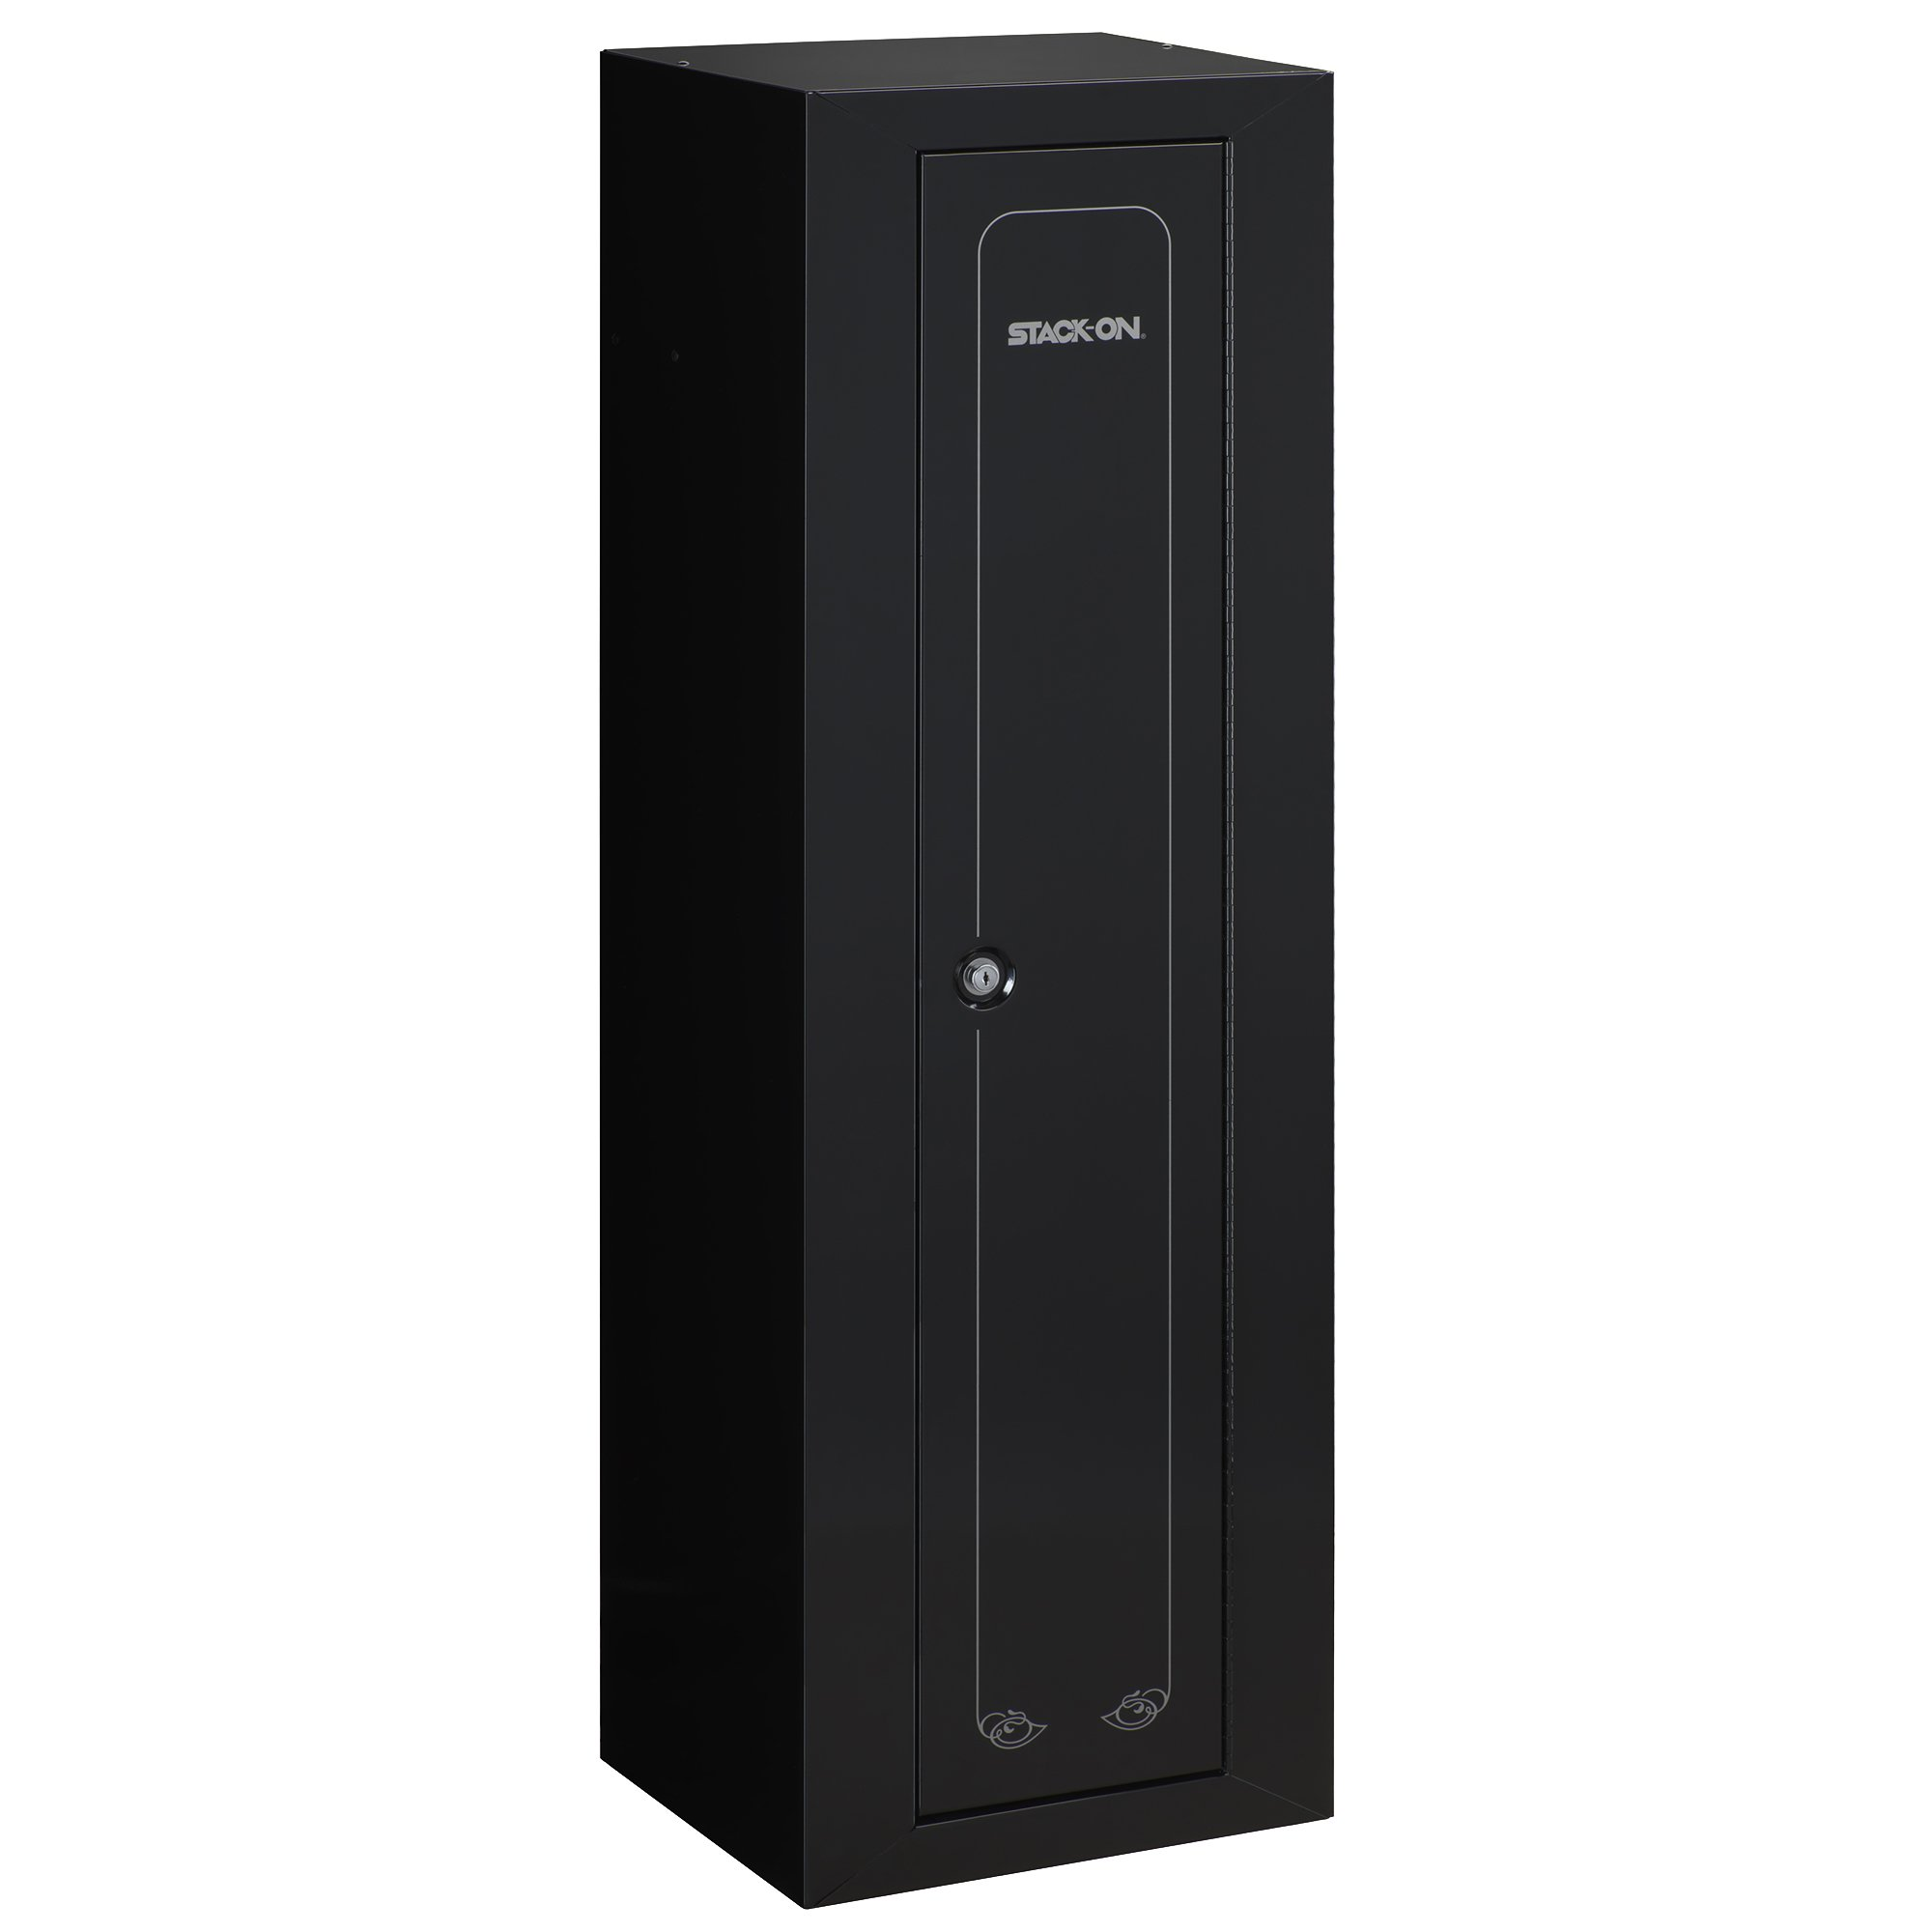 Stack-On GCB-910 Steel 10-Gun Compact Steel Security Cabinet, Black